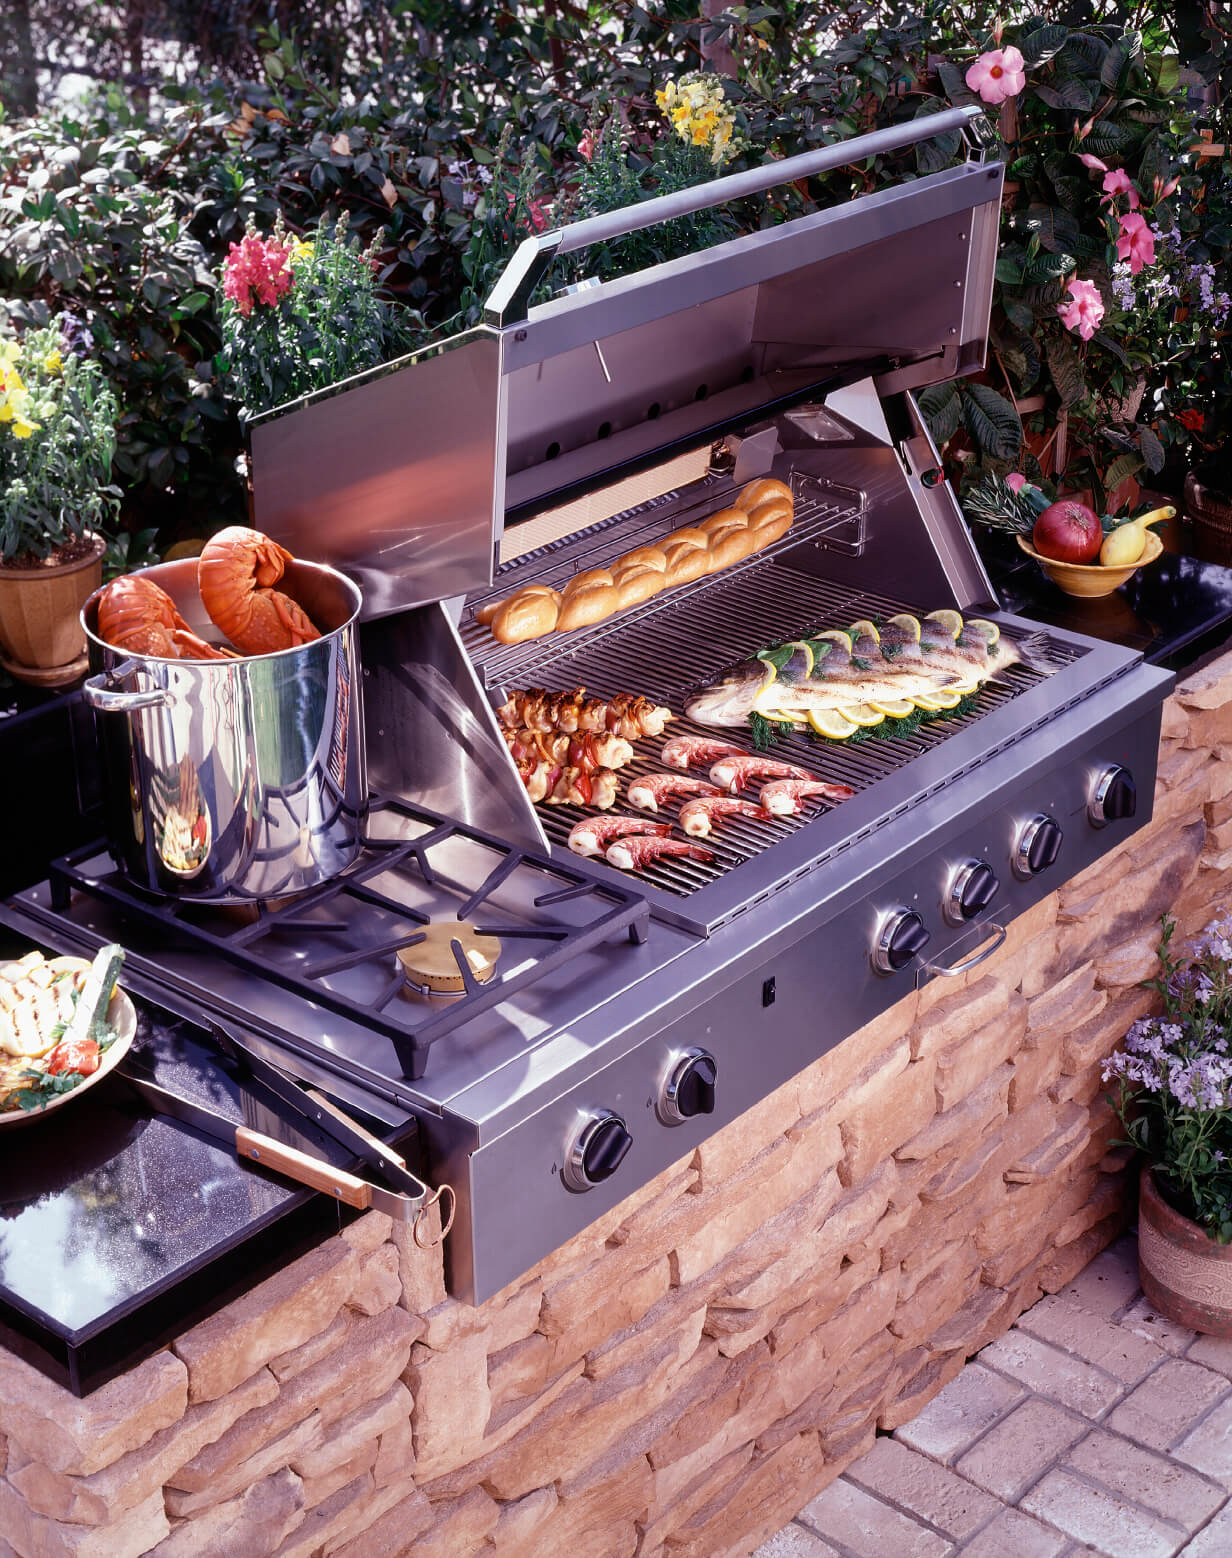 A close up look at the outdoor kitchen's stove and grill.